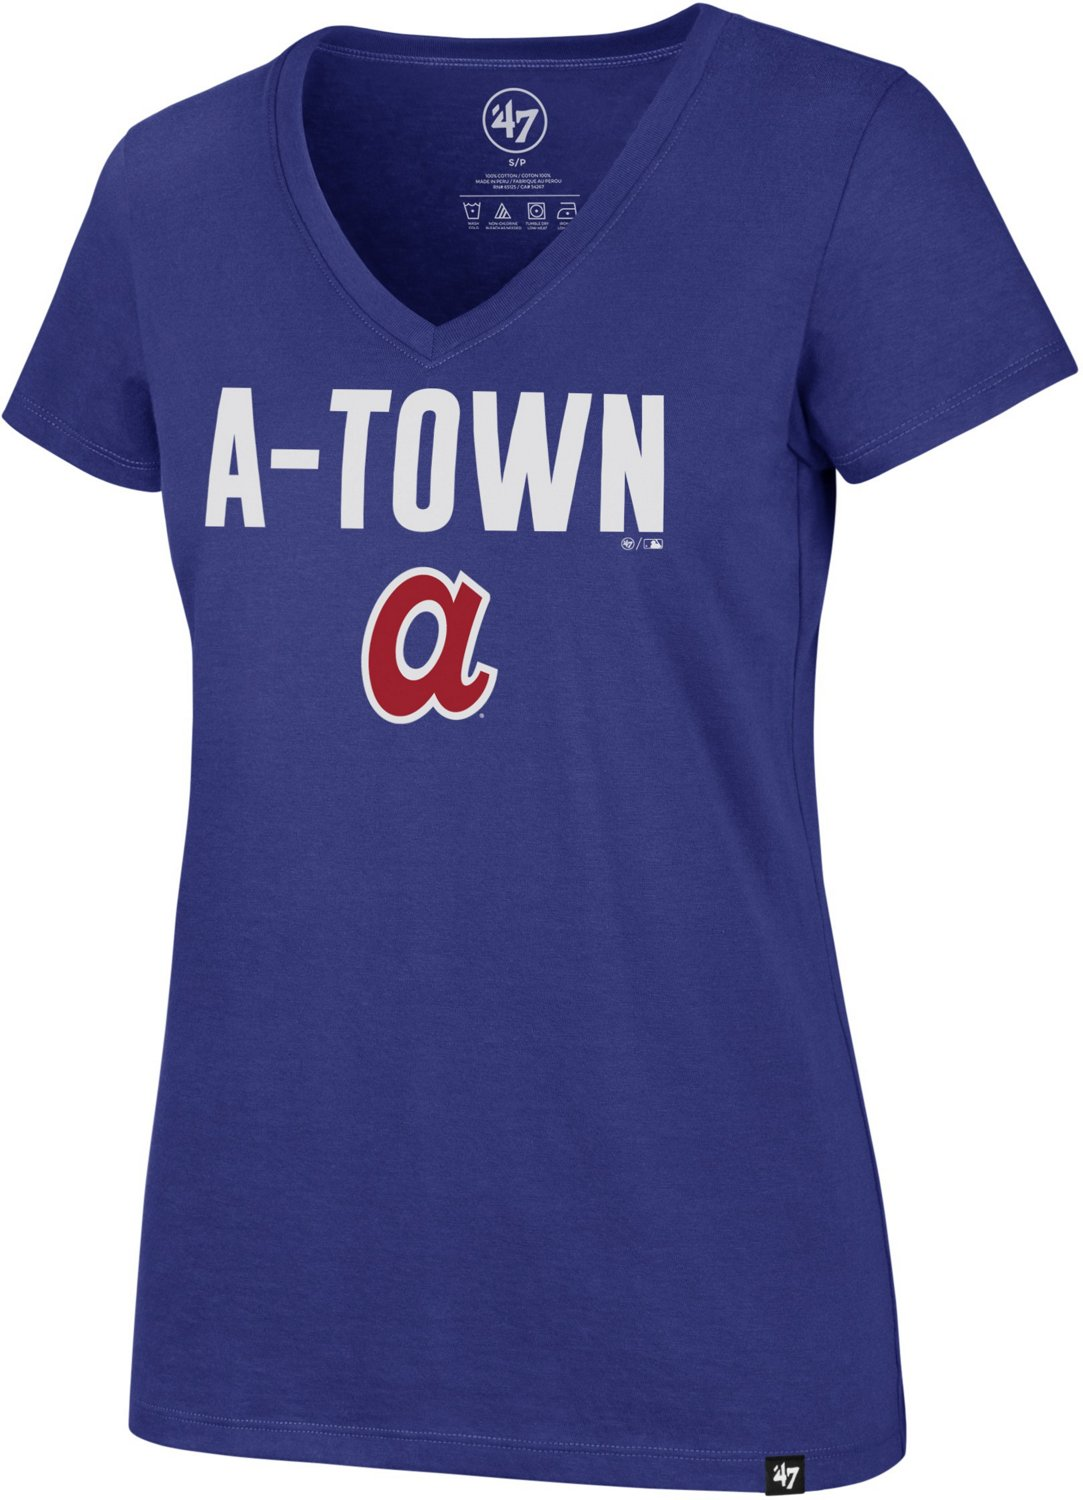 newest 5e086 a4793 '47 Atlanta Braves Women's Regional Ultra Rival T-shirt